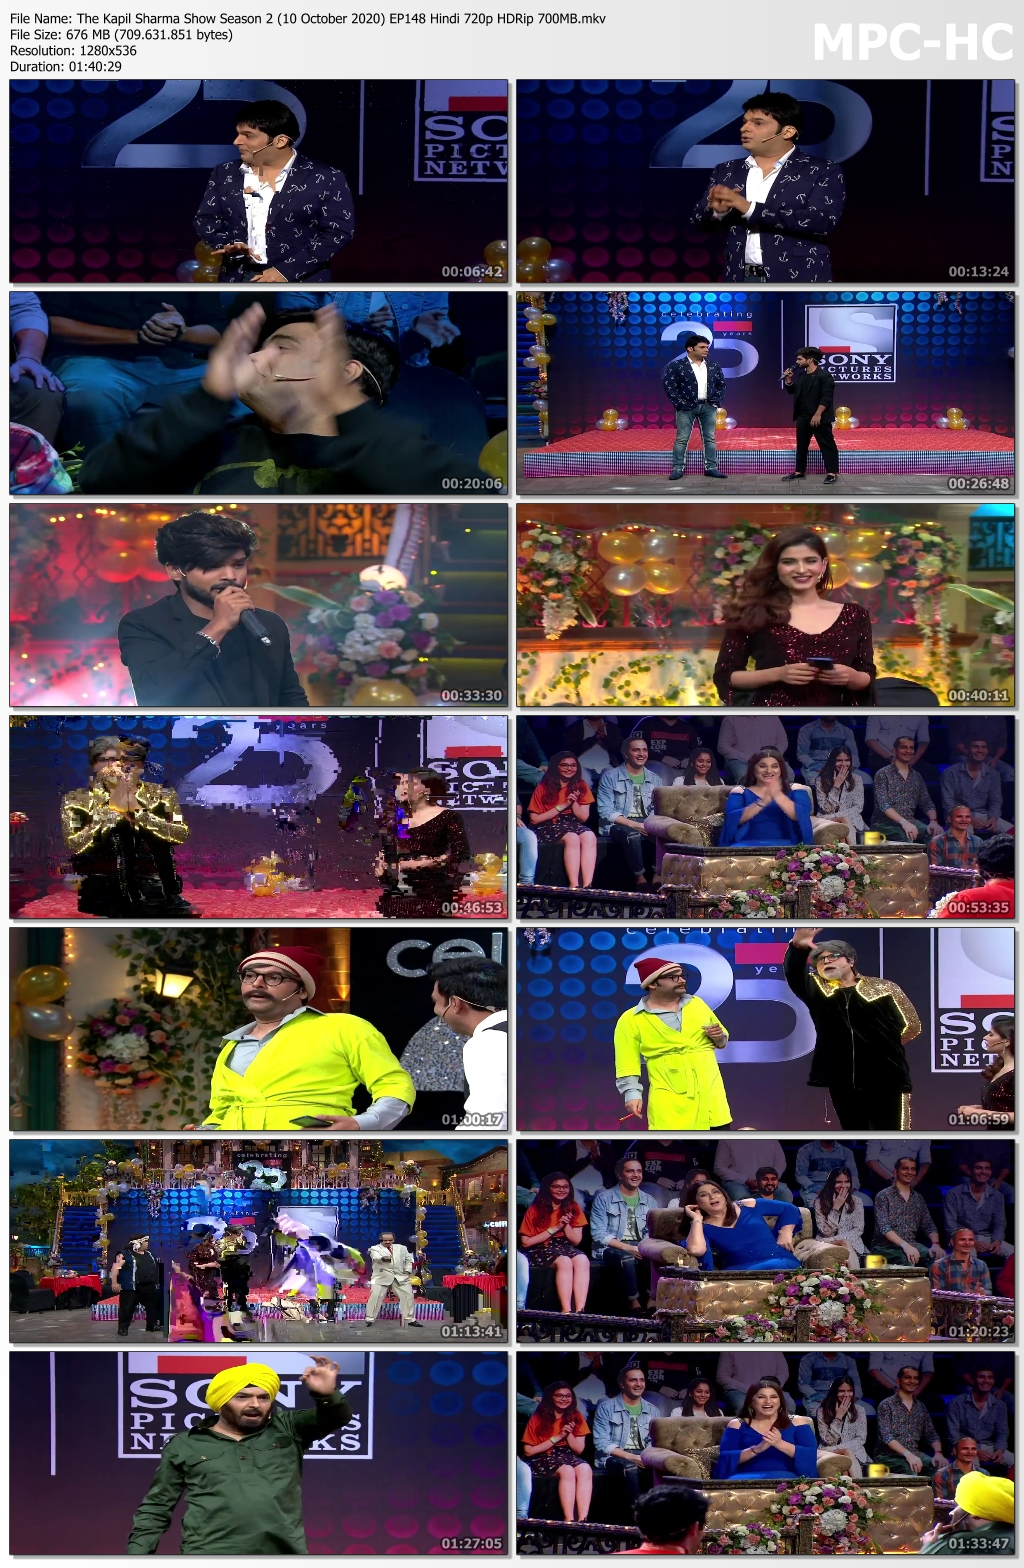 The-Kapil-Sharma-Show-Season-2-10-October-2020-EP148-Hindi-720p-HDRip-700-MB-mkv-thumbs